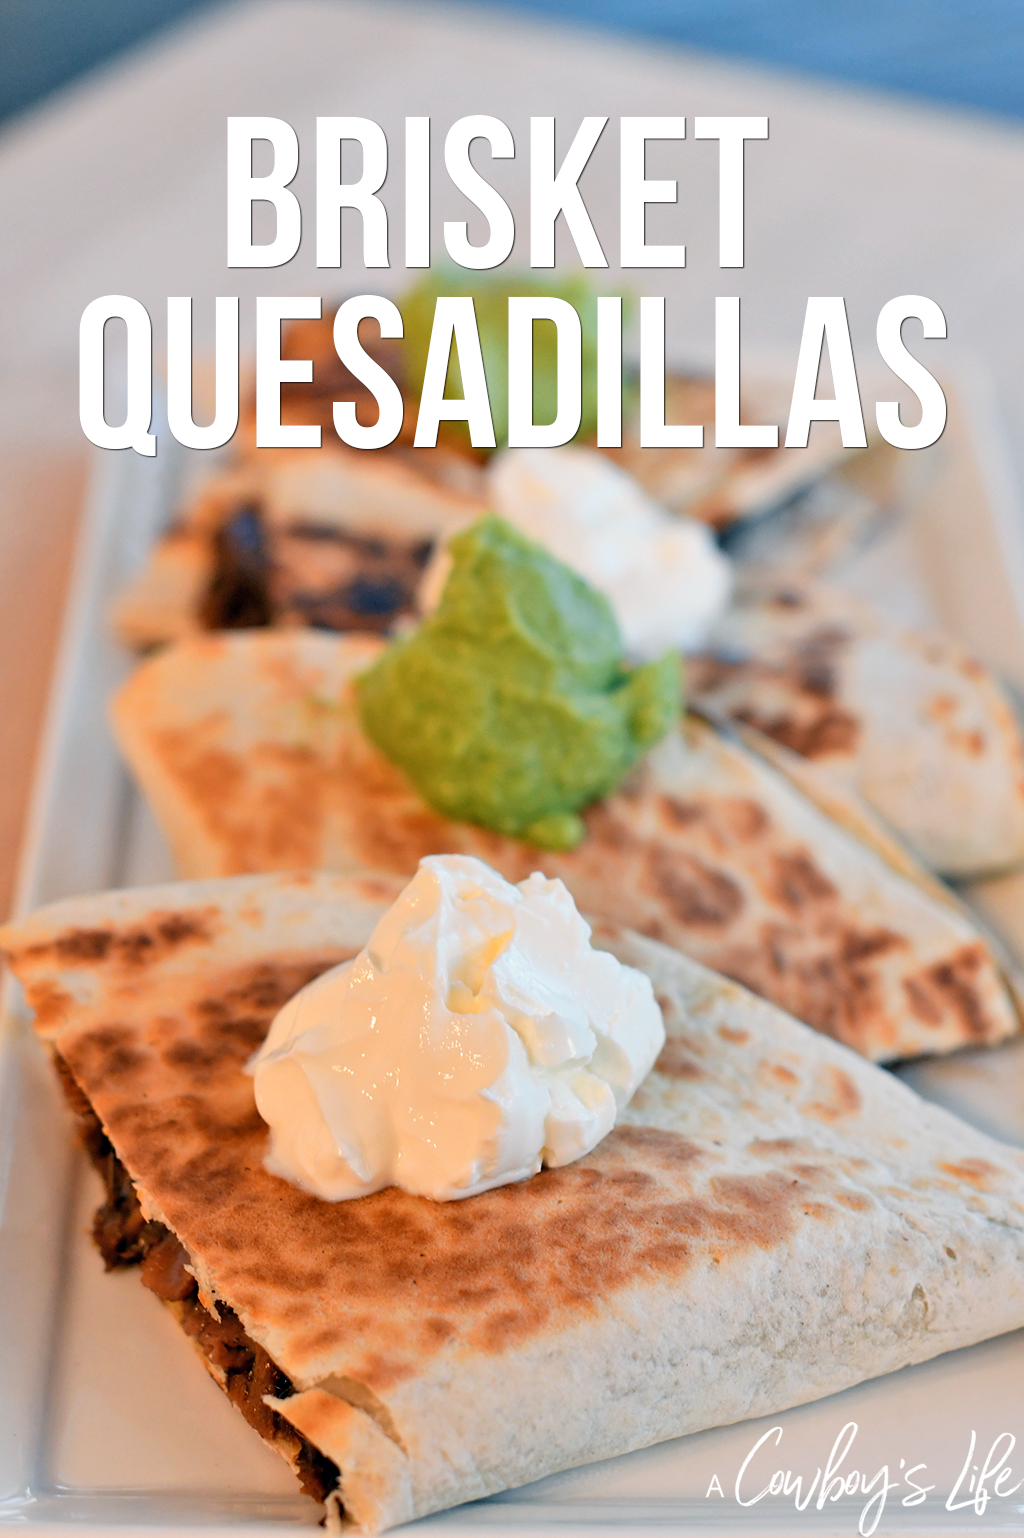 Brisket Quesadillas | Brisket | Low Carb Quesadilla | Keto Dinner | BBQ Dinner | Taco Tuesday #shrimpquesadillas #grilledshrimp #tacotuesday